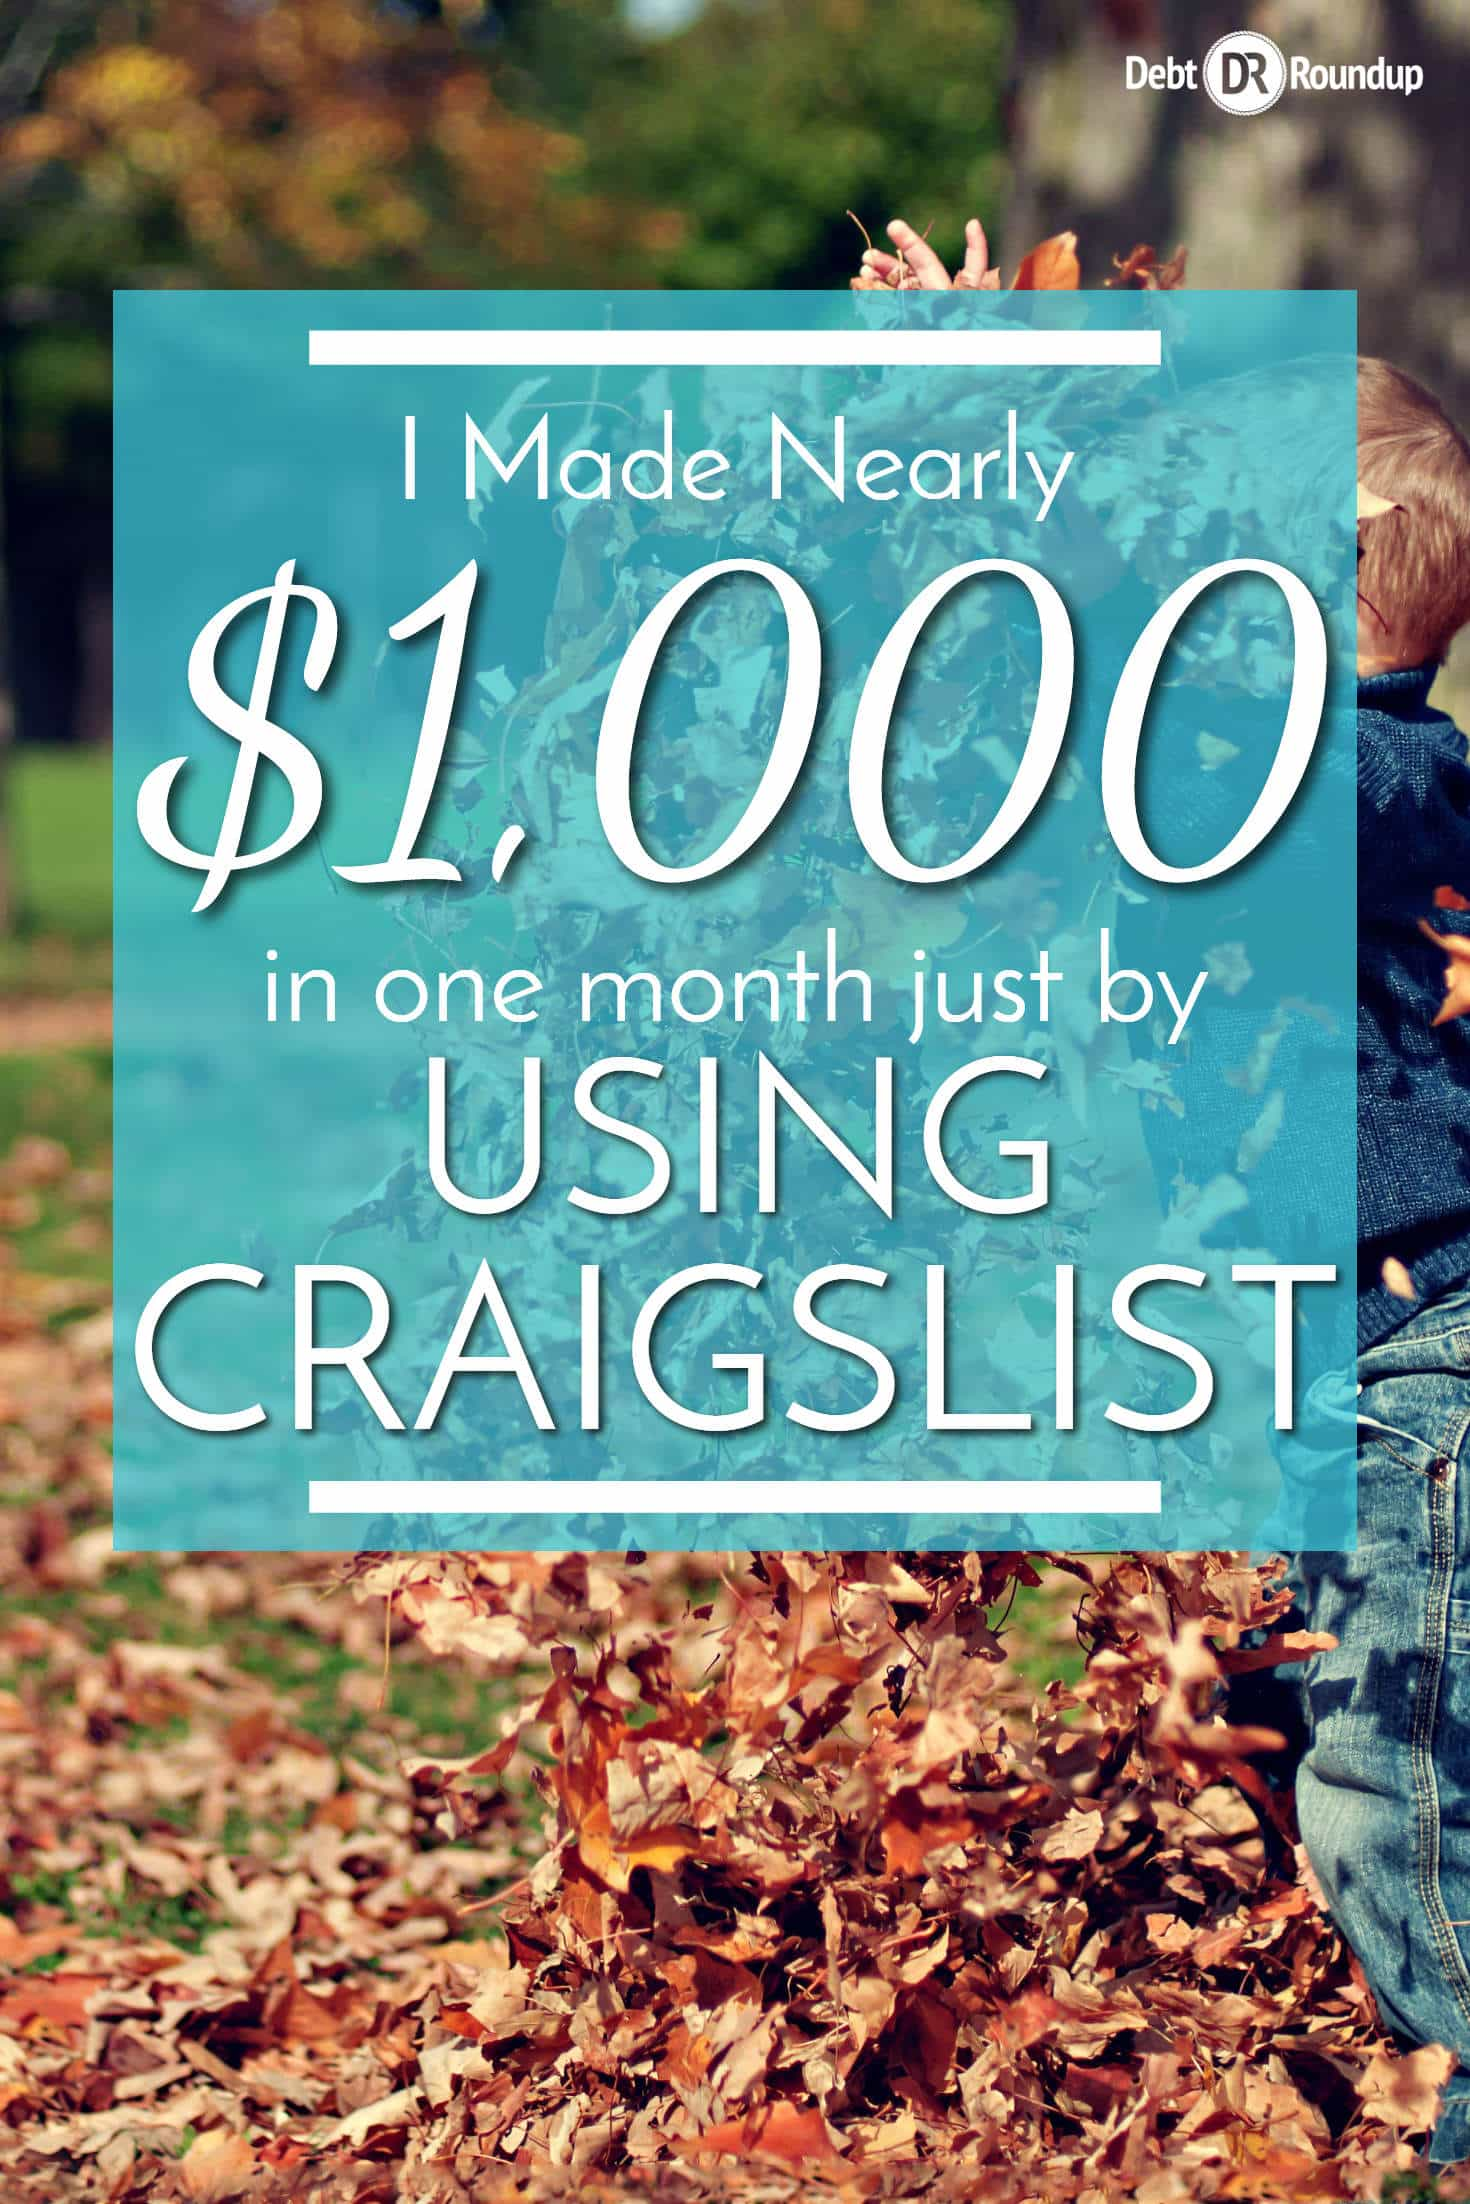 How I Made Nearly $1,000 Using Craigslist